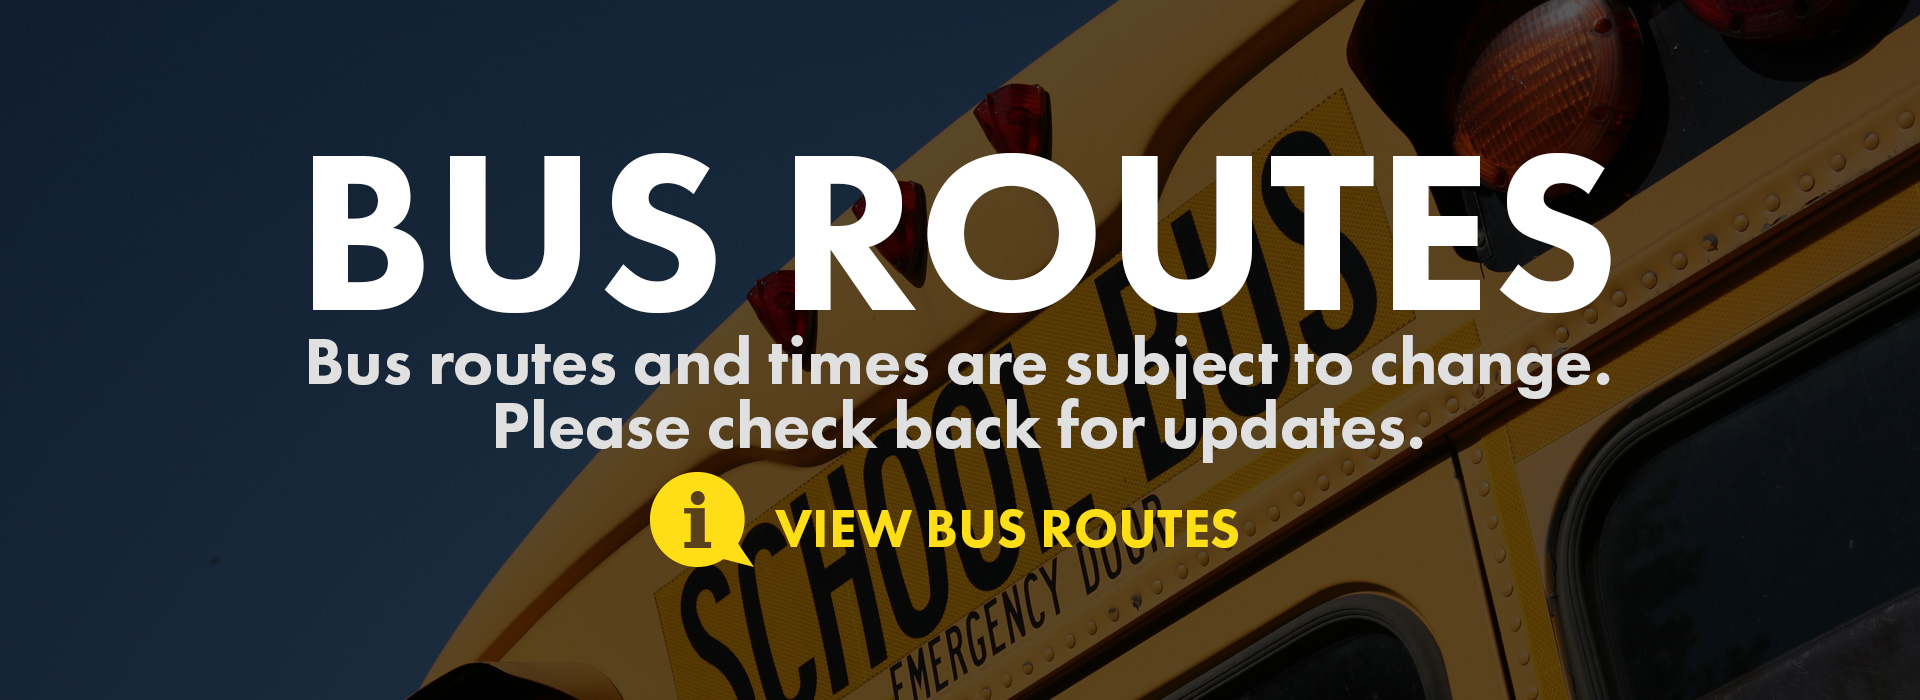 bus routes and times change